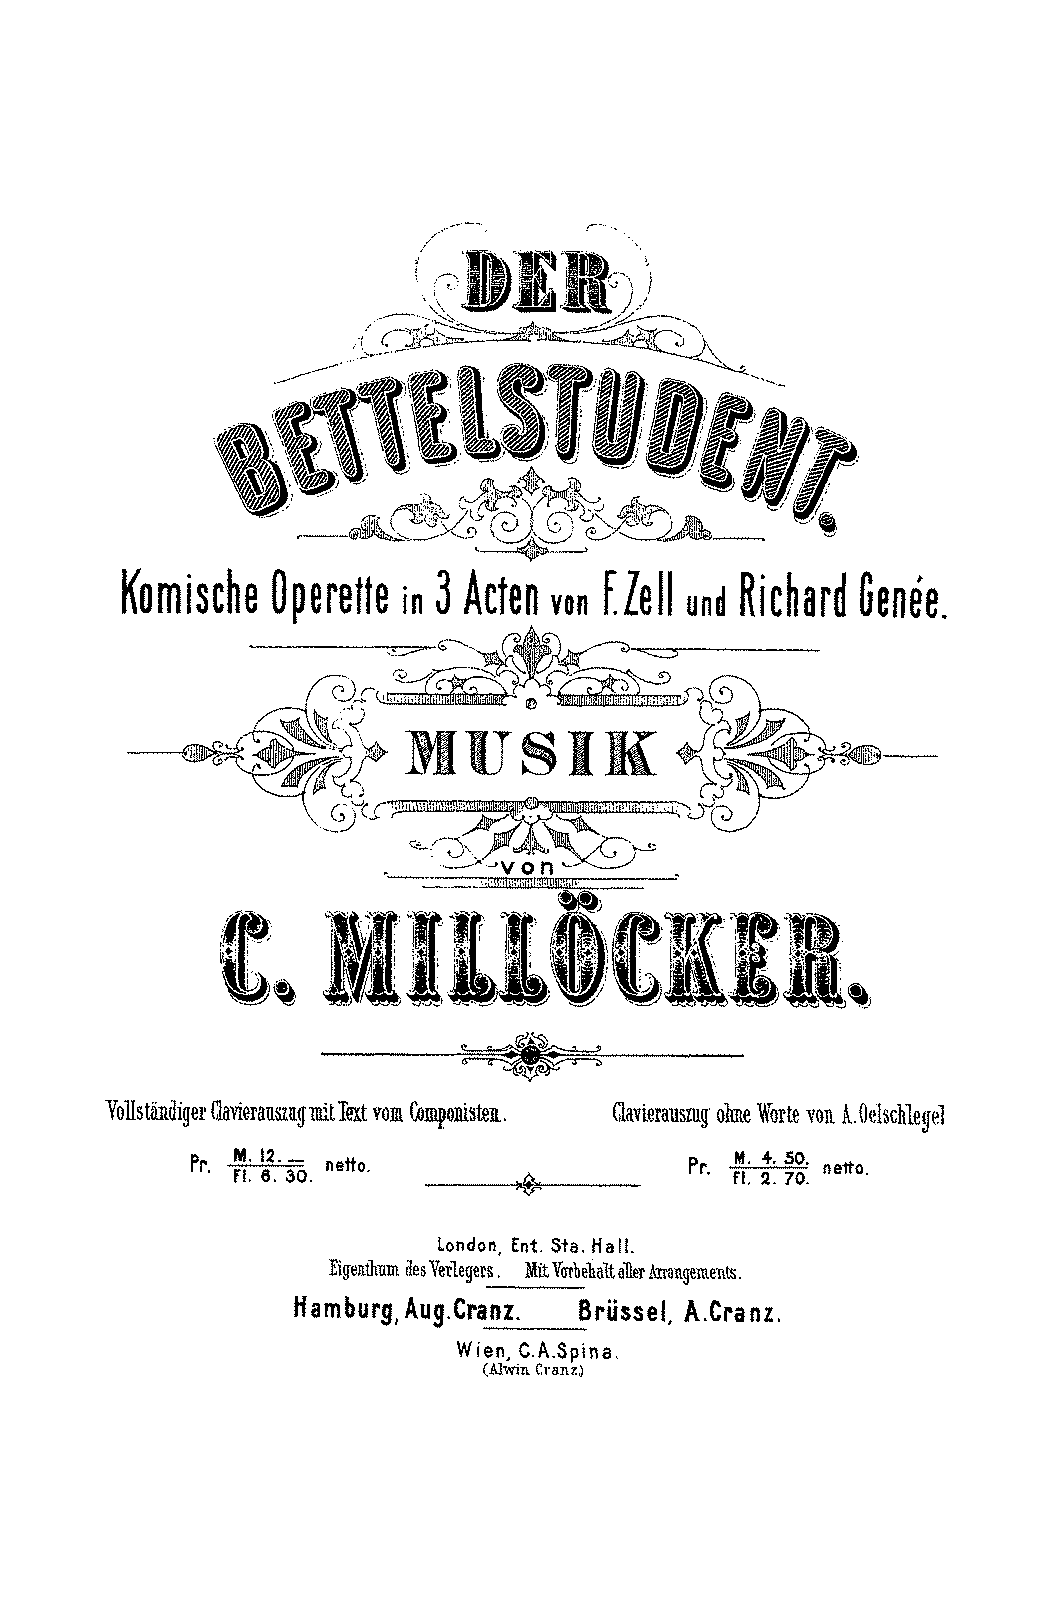 PMLP213855-Millocker - Der Bettelstudent VS rsl.pdf